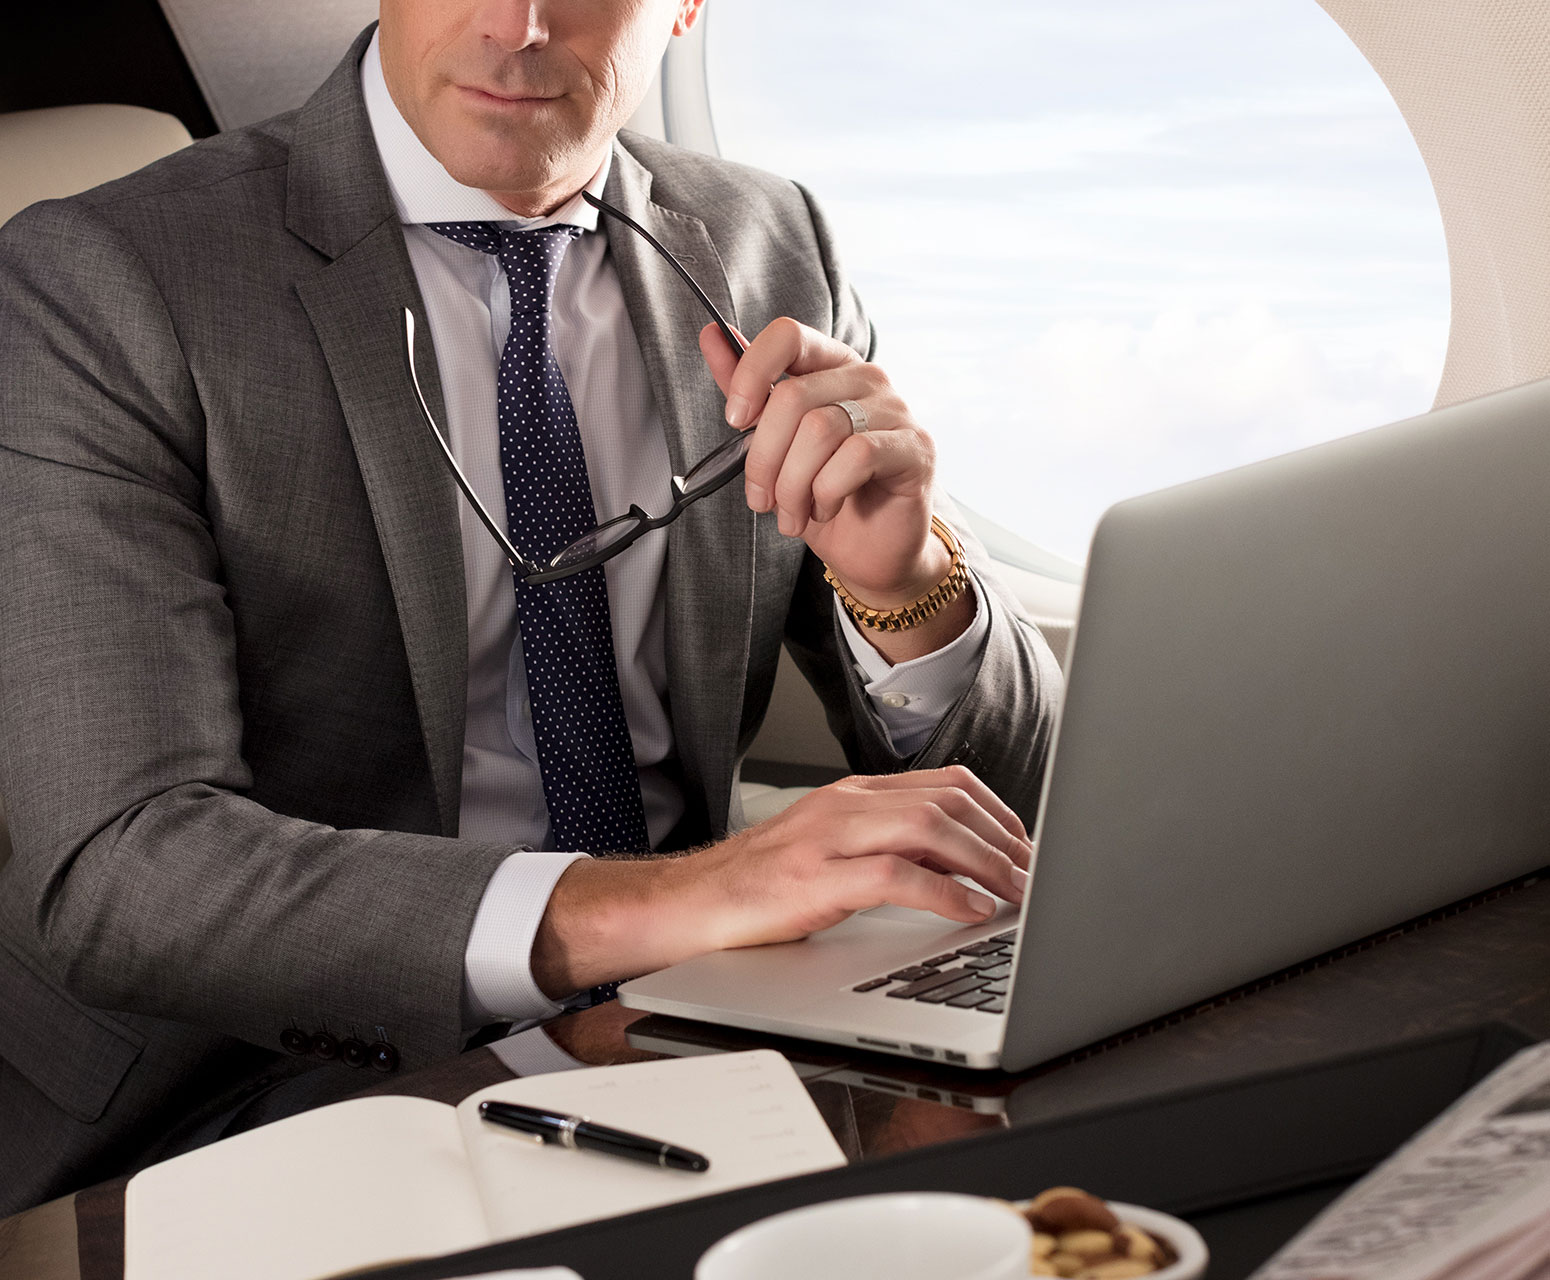 Man with glasses working on computer inside G500 aircraft